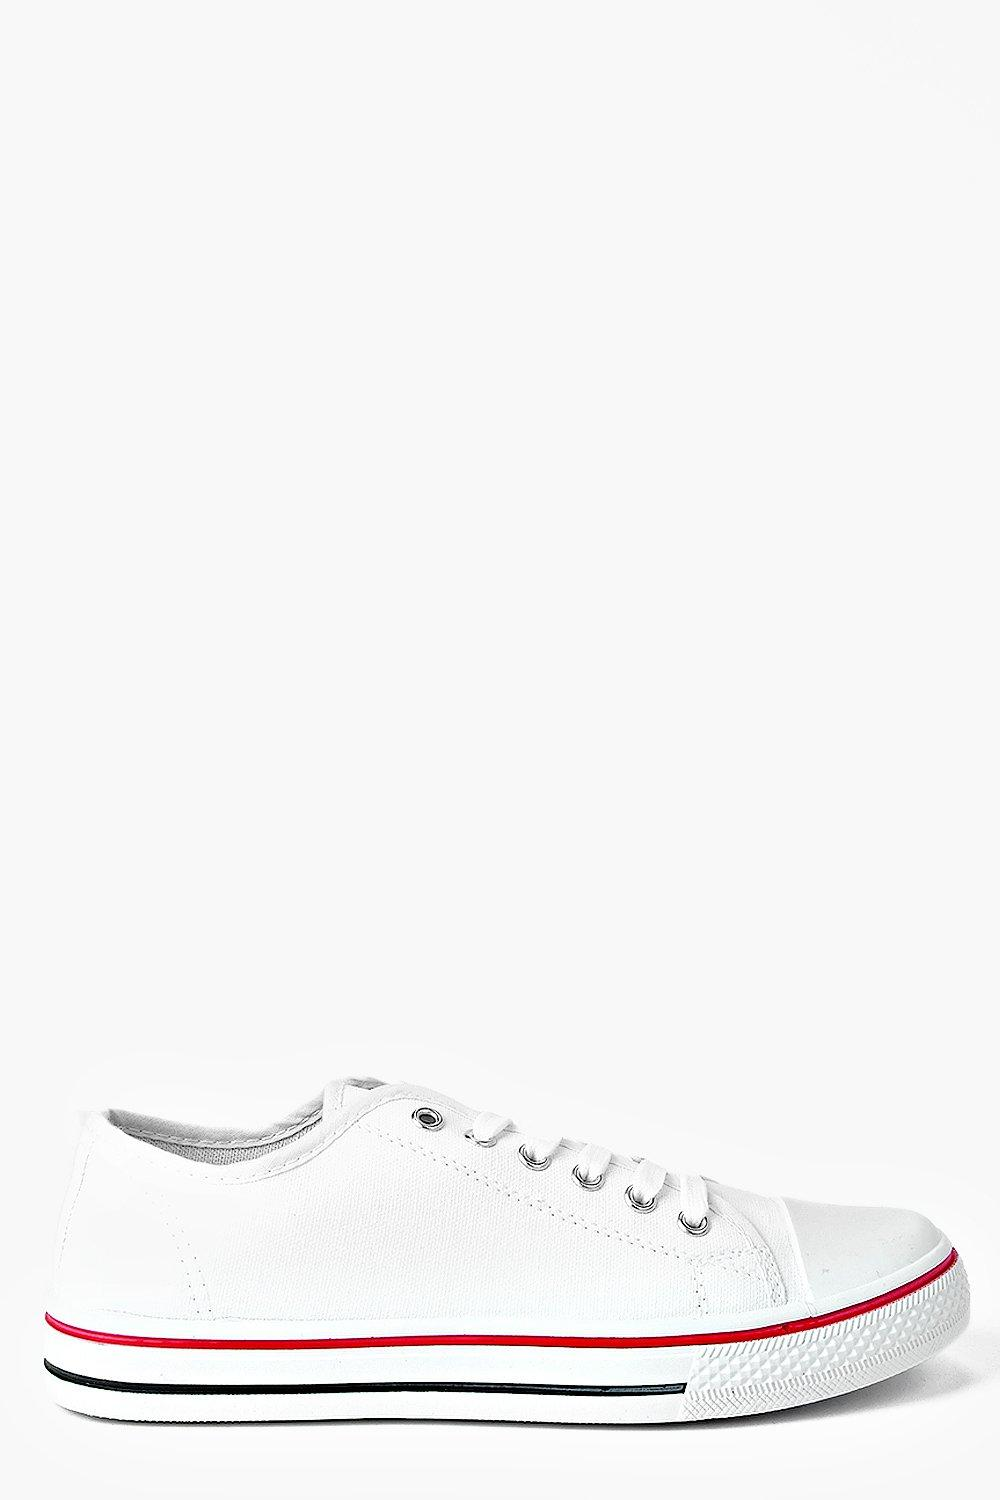 Festival Shoes Lace Up Canvas Flat Trainers